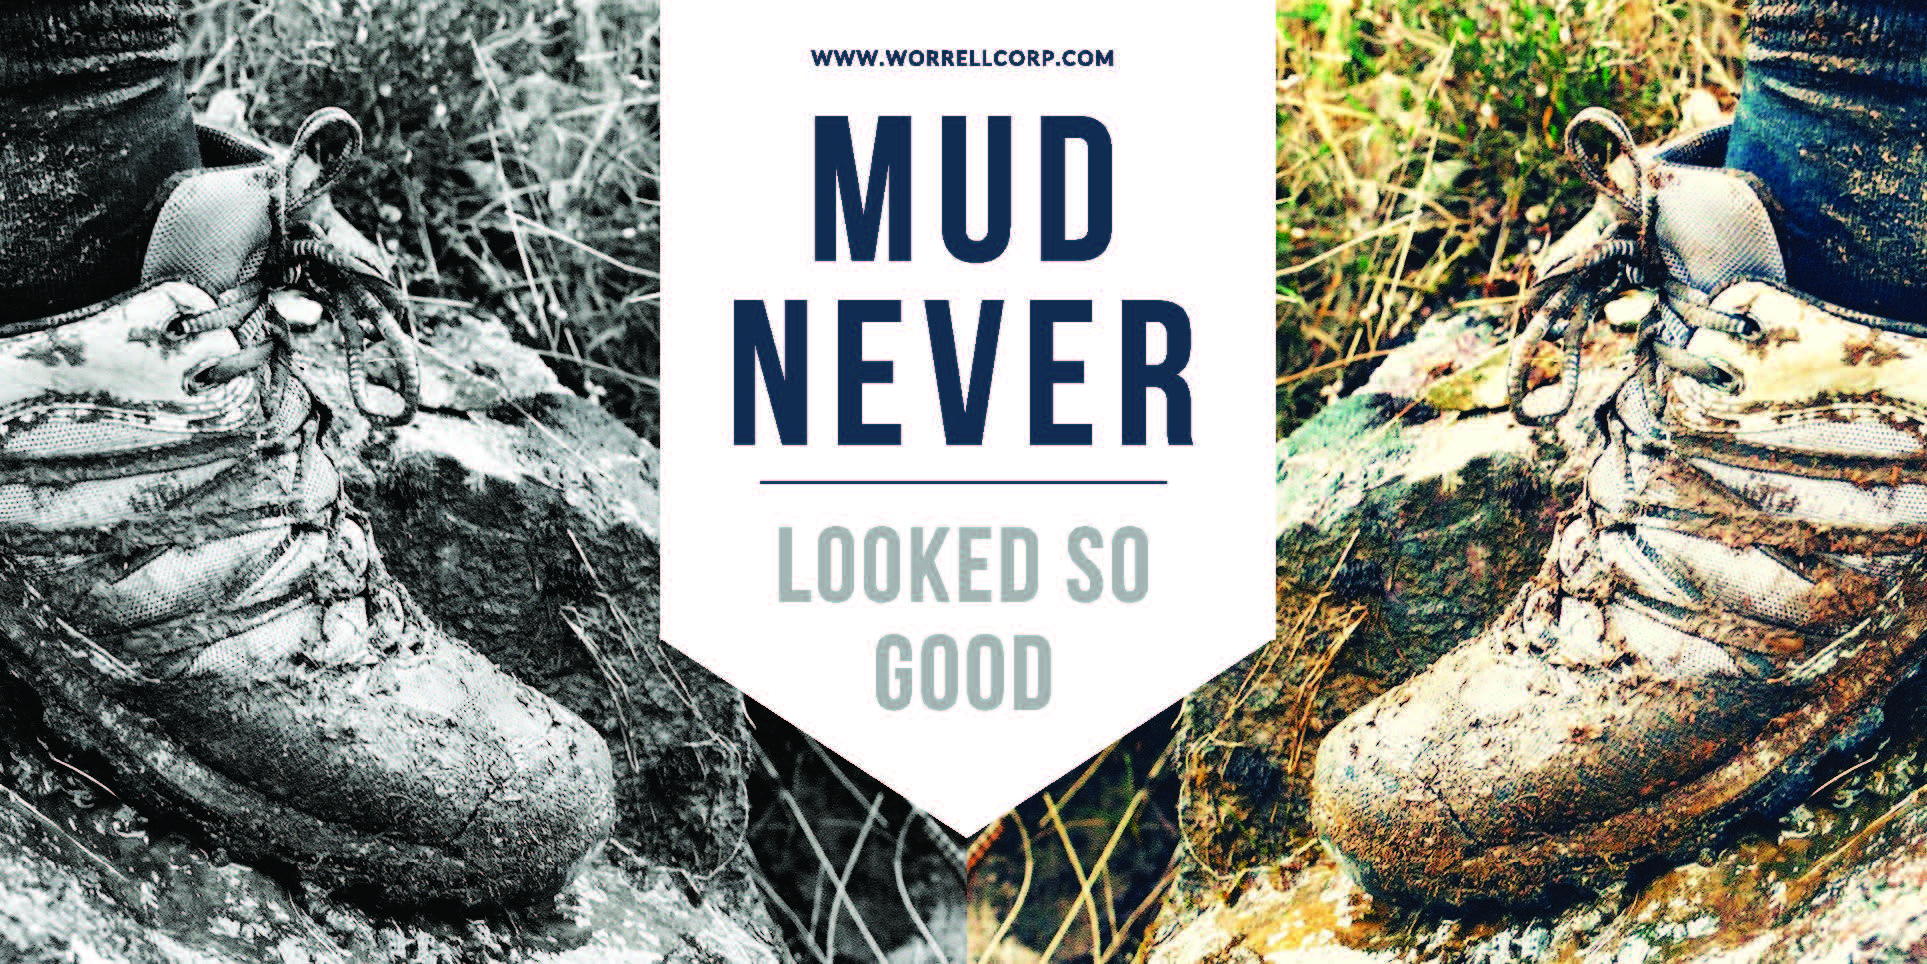 Mud Never Looked So Good